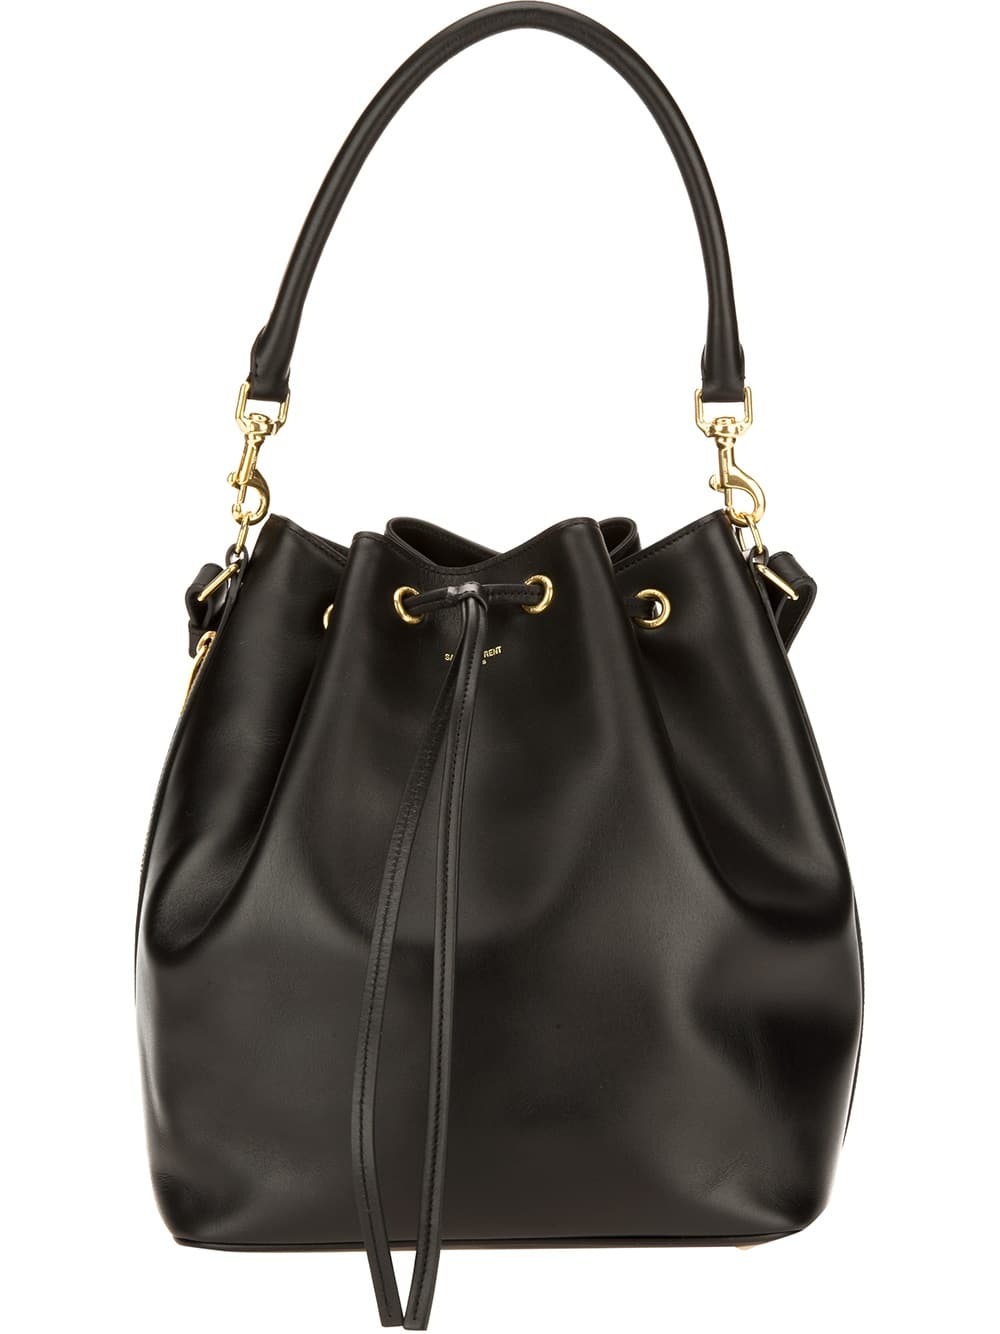 The Bucket Bag Makes a Comeback for Spring / Summer 2014 ...